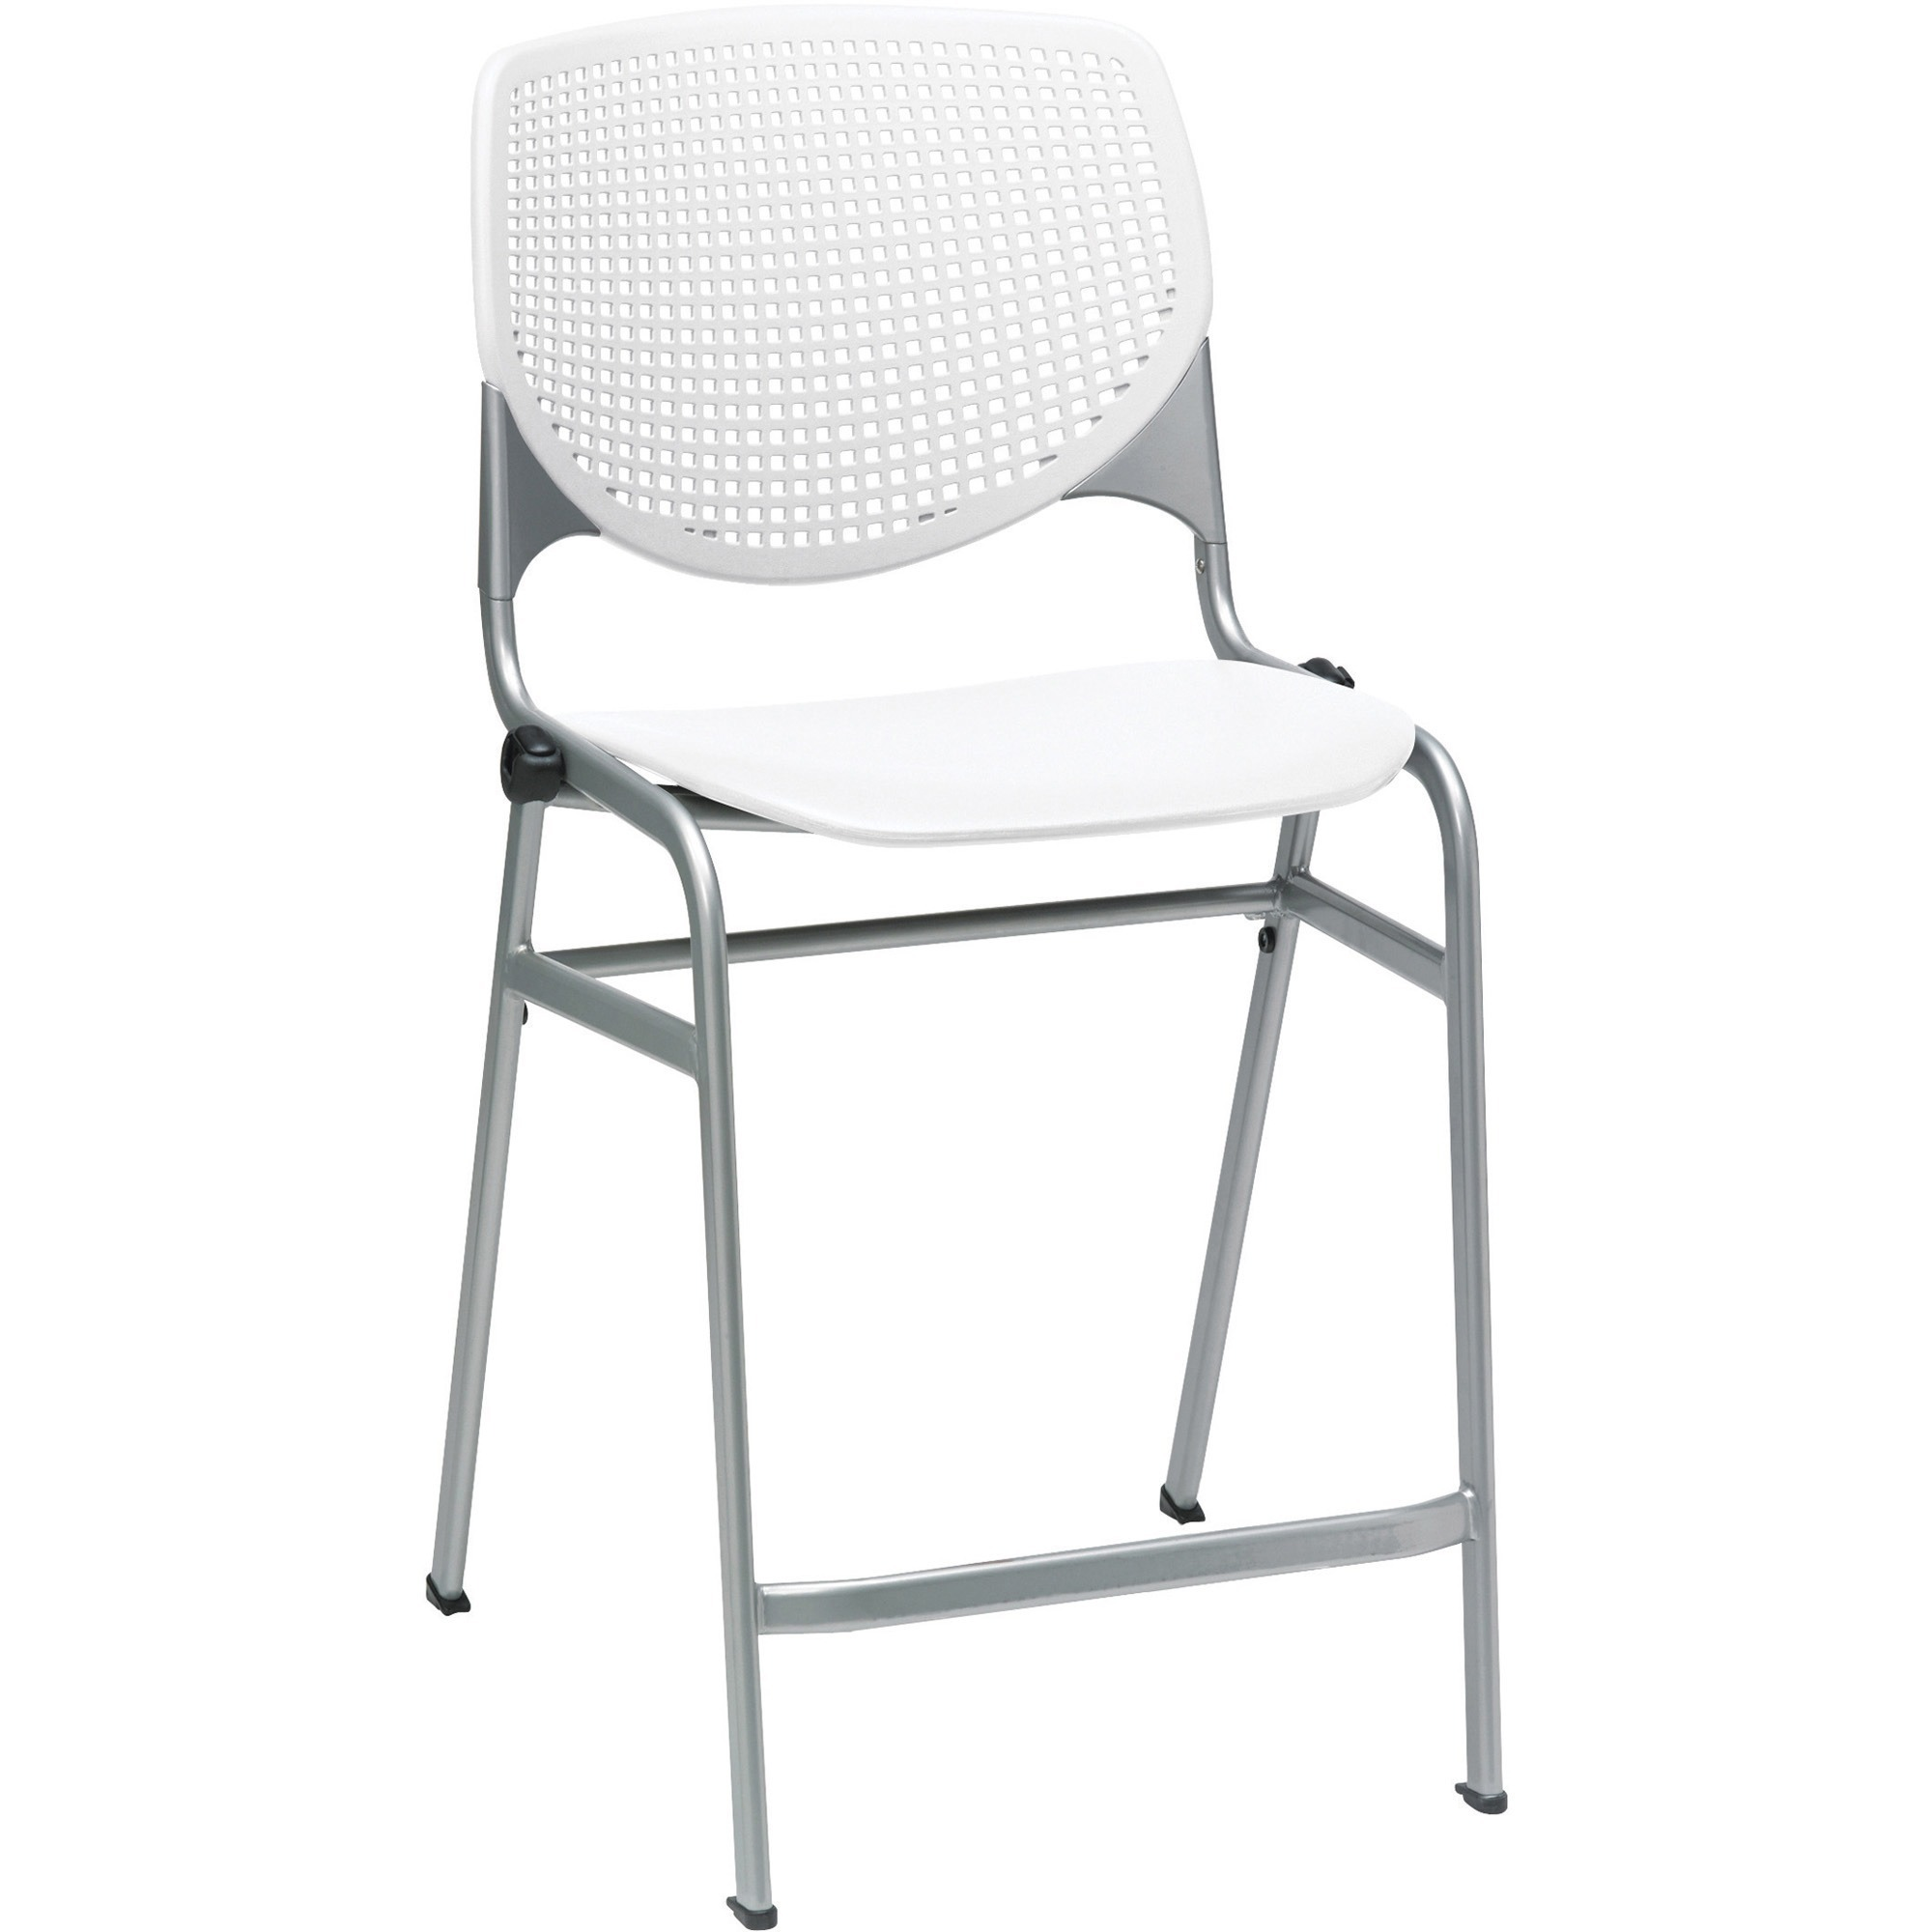 Astonishing Kfi Kool Counter Height Stackable Stool Polypropylene White Seat Polypropylene White Aluminum Alloy Back Cold Rolled Steel Powder Coated Silver Unemploymentrelief Wooden Chair Designs For Living Room Unemploymentrelieforg